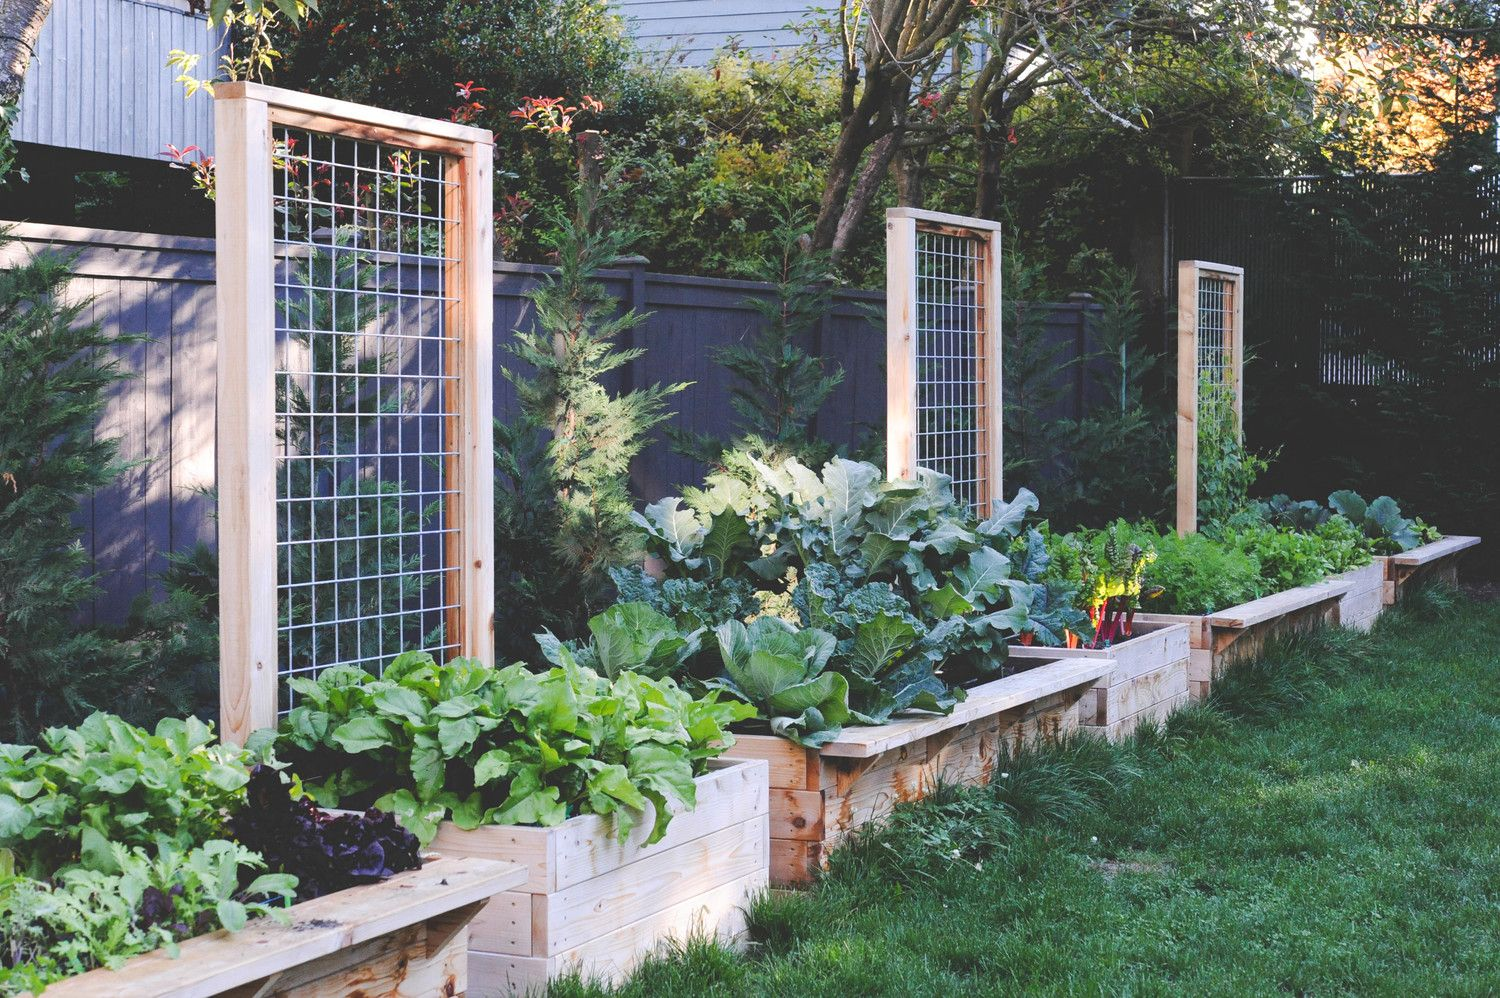 Pin by Seattle Urban Farm Company on WOOD FRAMED | Raised ...